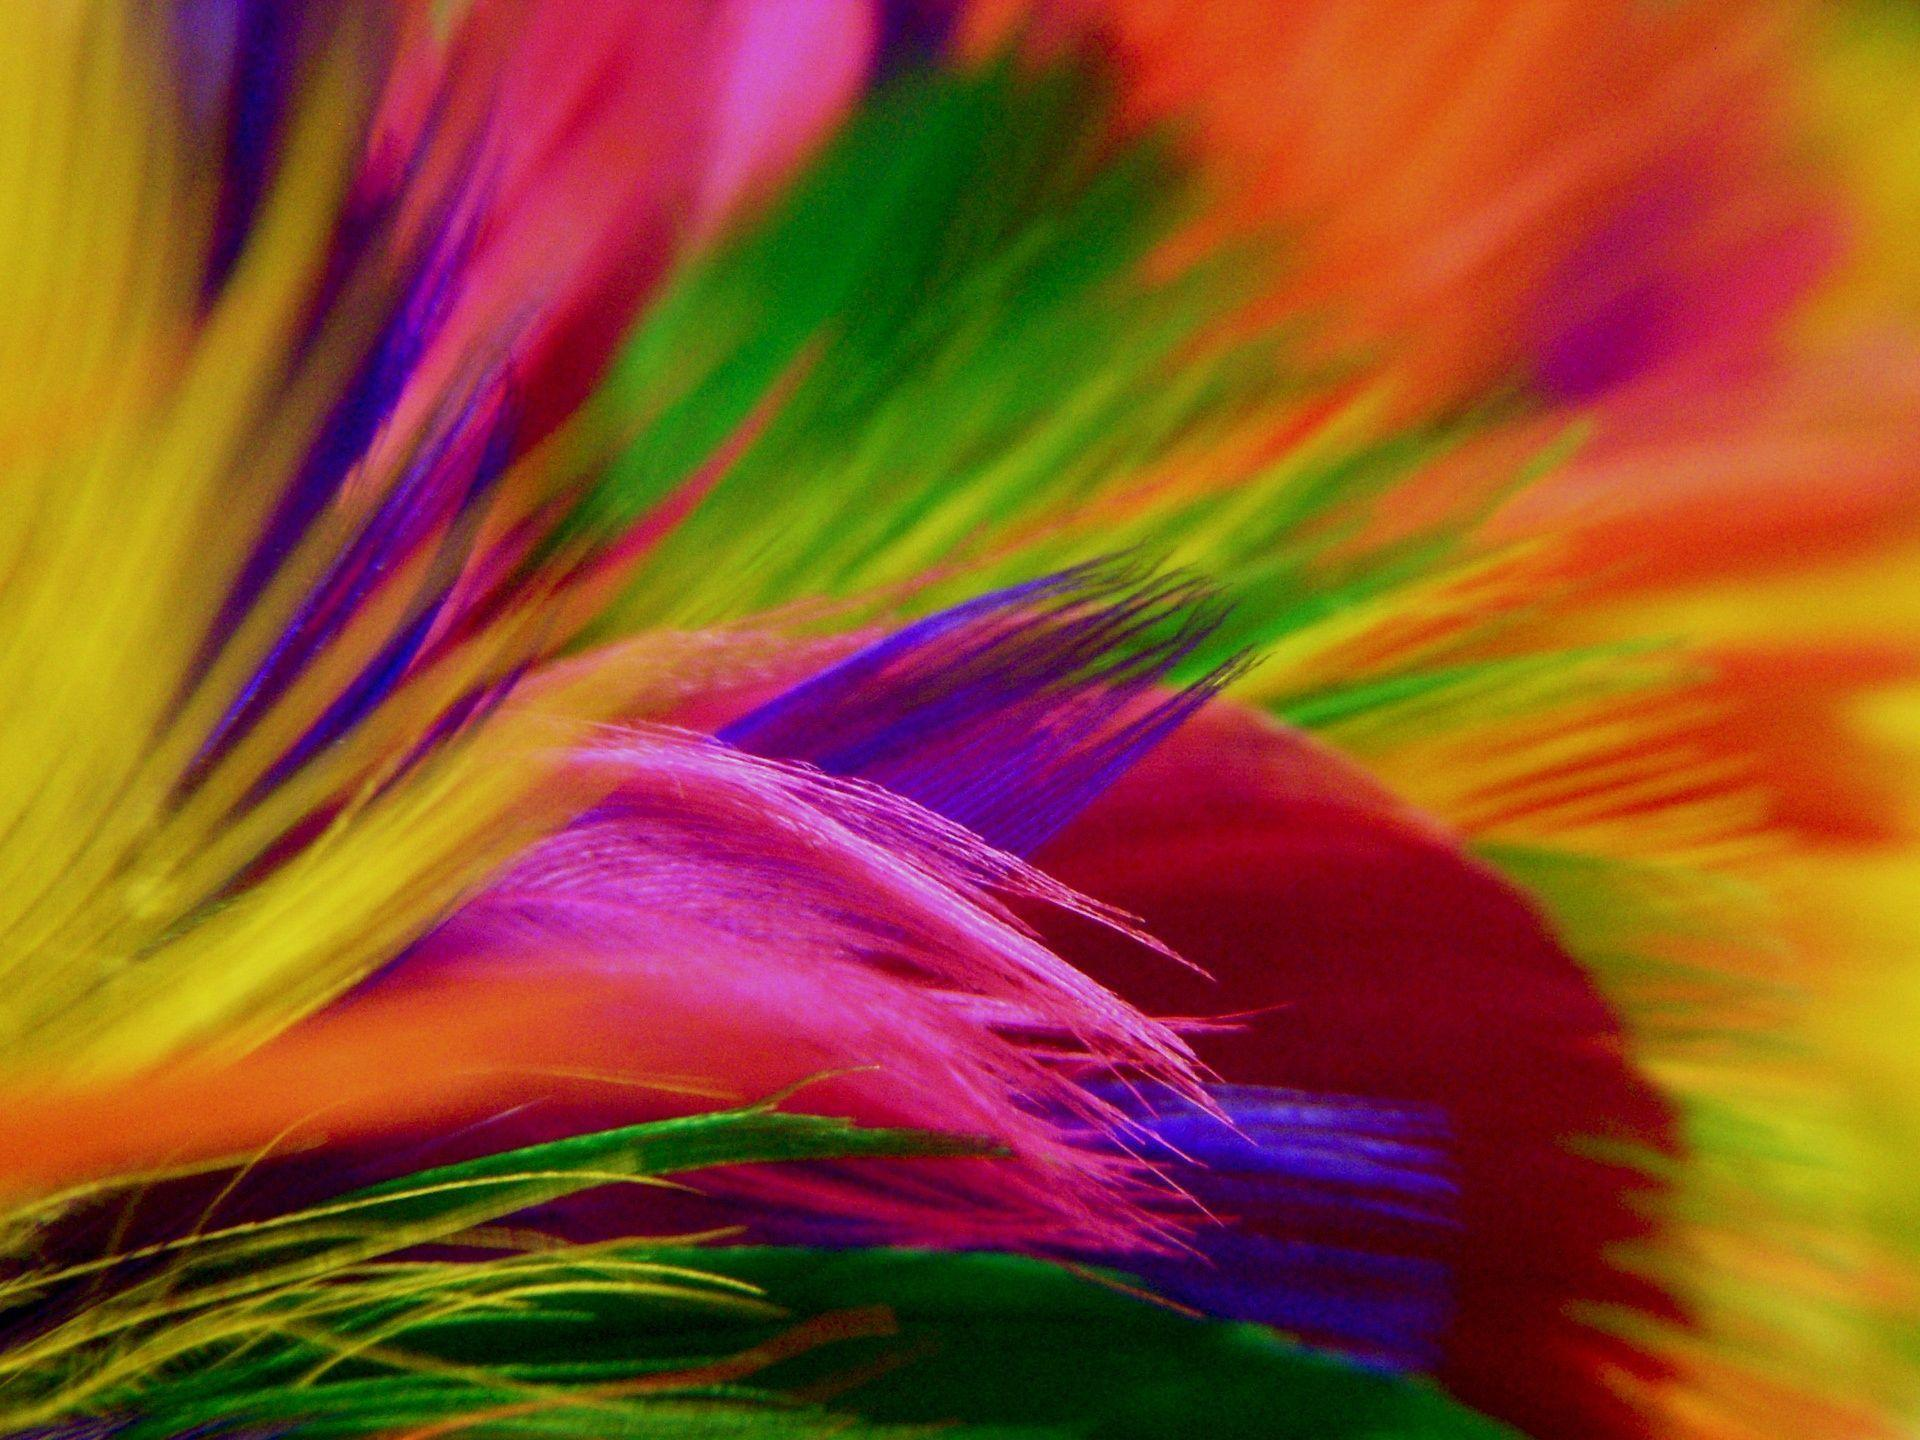 Free Colorful Flower Desktop Wallpaper: Colorful HD Backgrounds